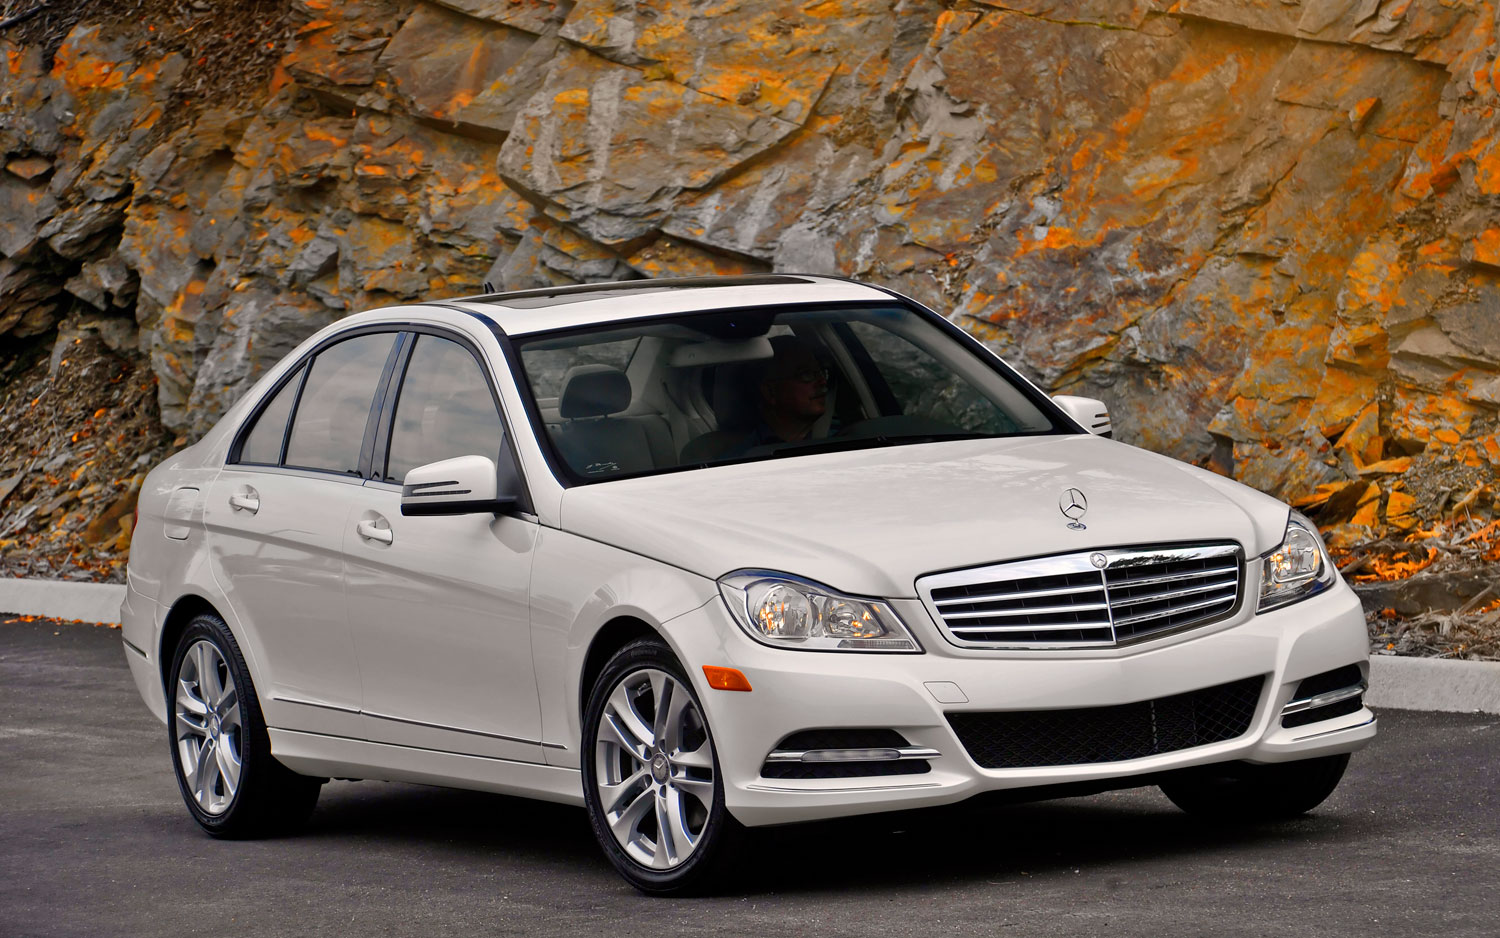 2013 Mercedes Benz C300 4Matic Gets More Power, Better Economy